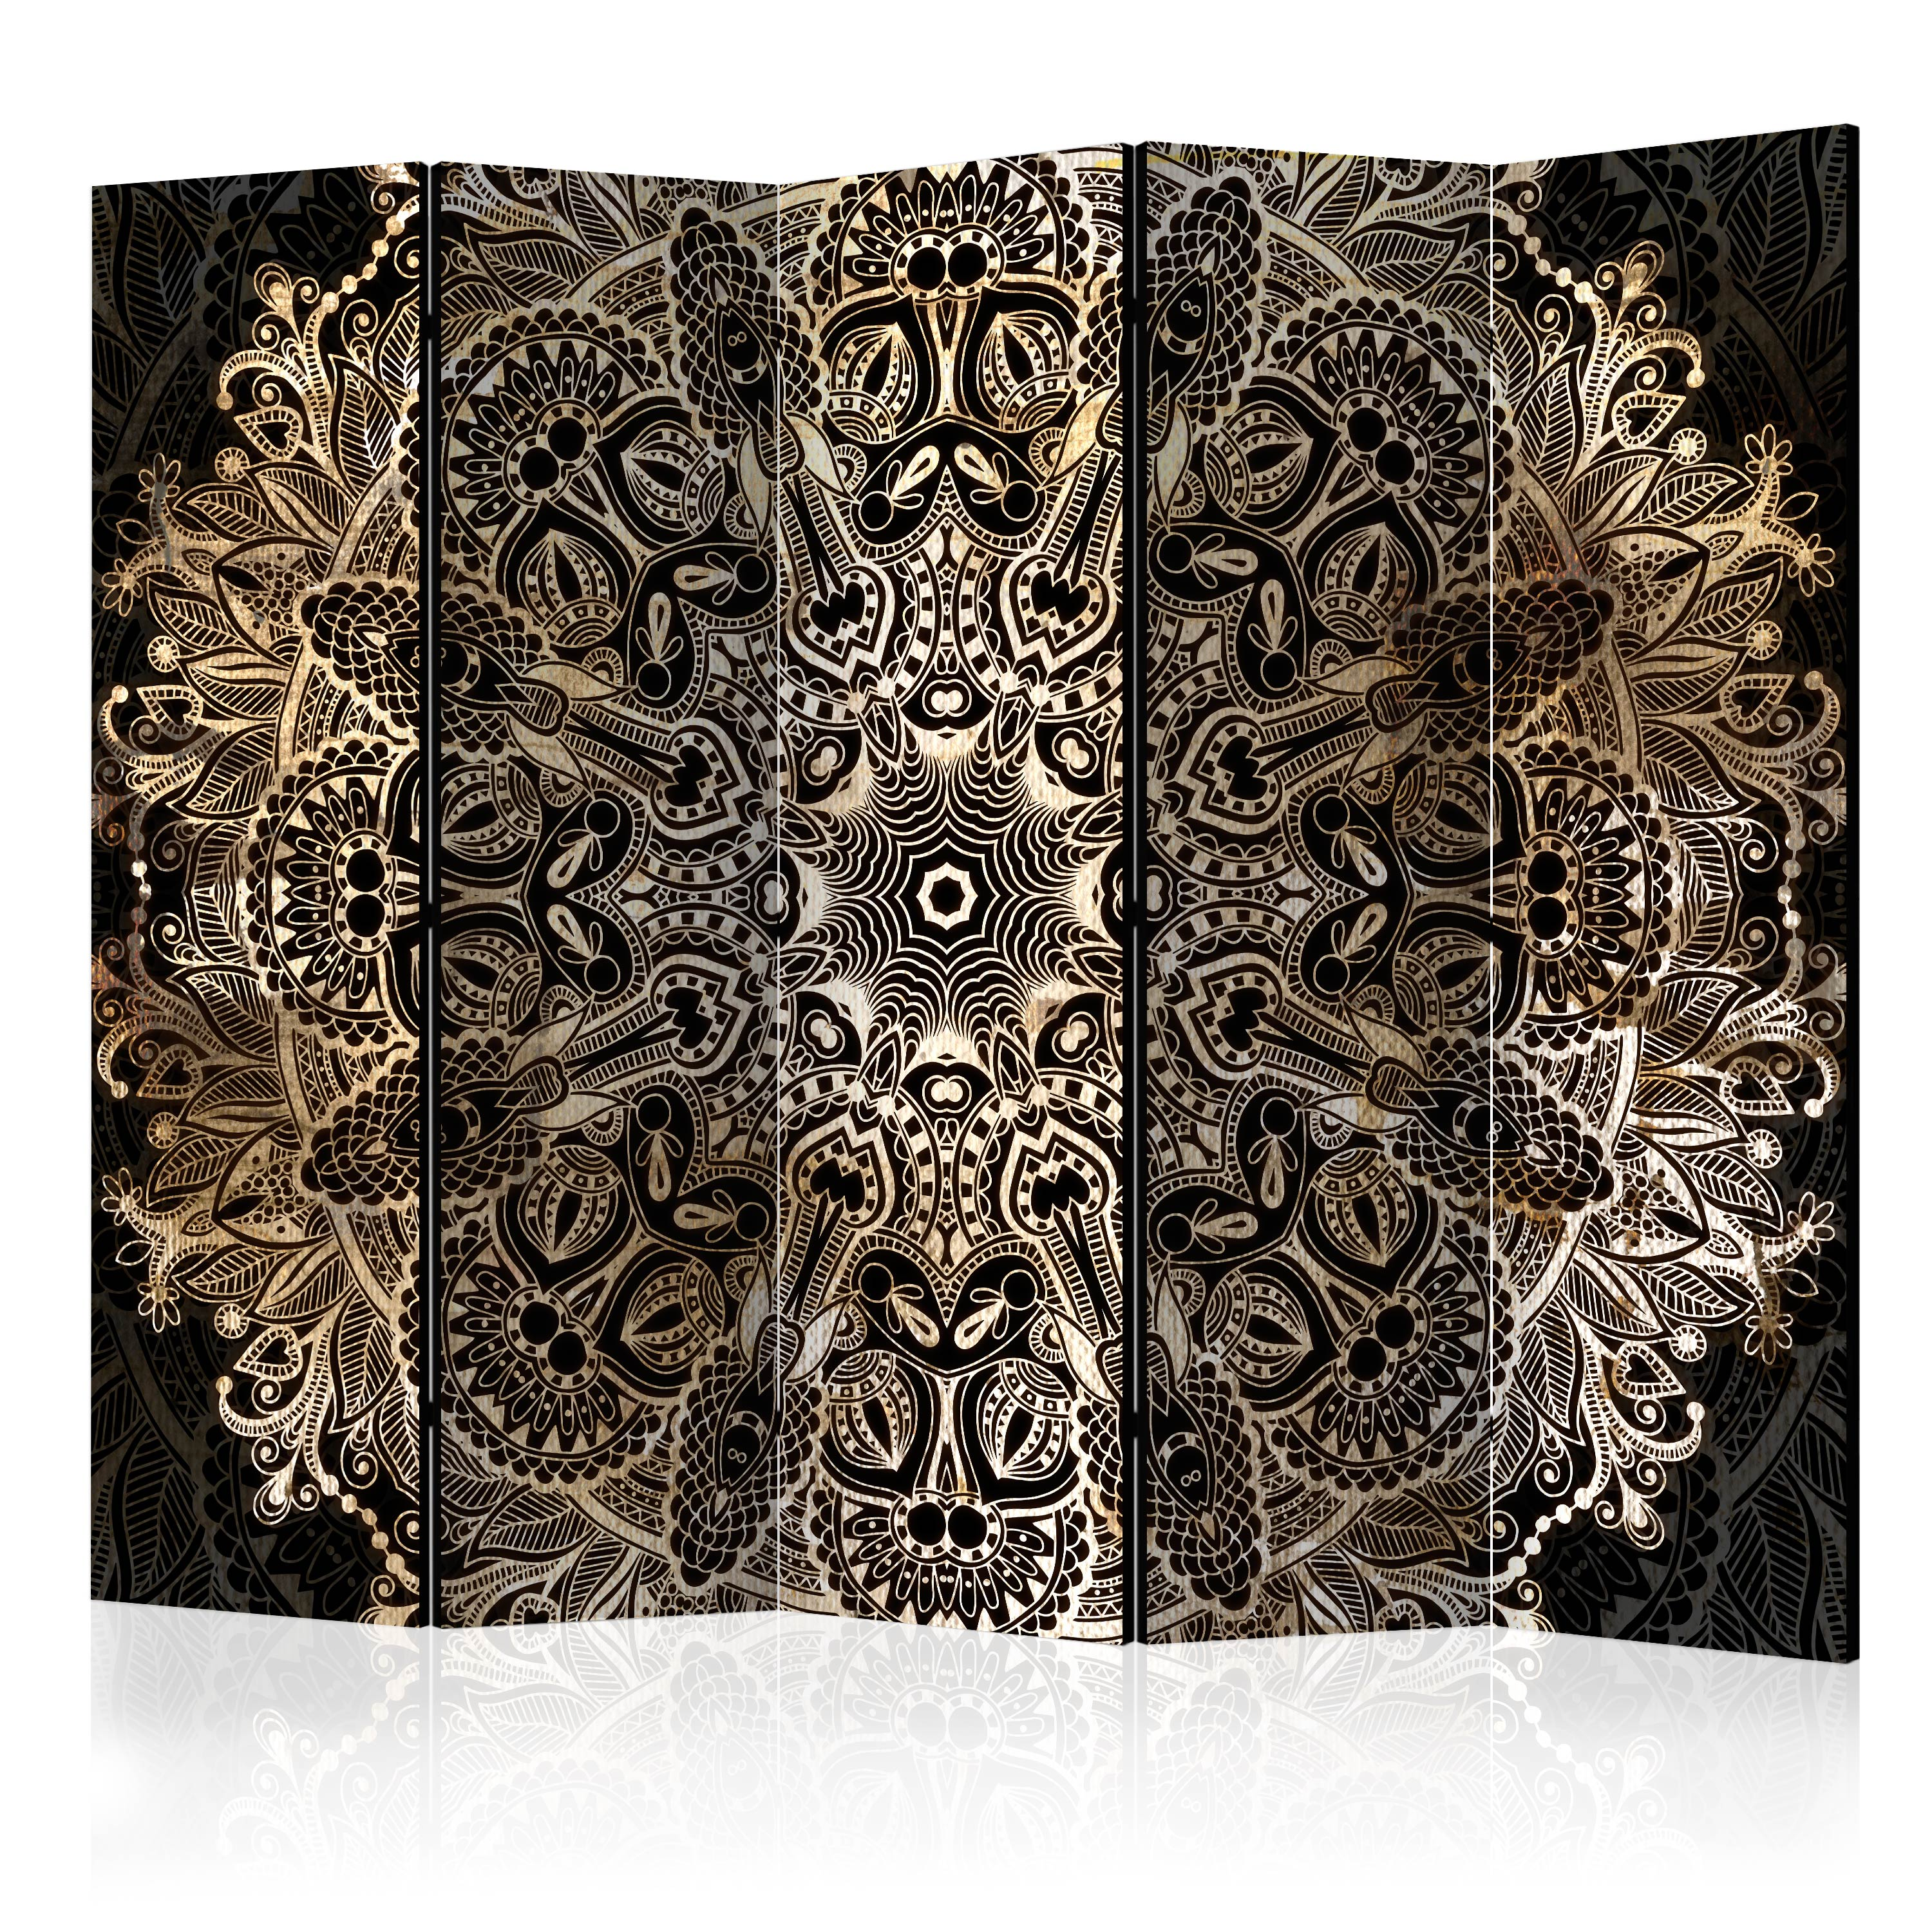 deko paravent raumteiler trennwand mandala orient ornament. Black Bedroom Furniture Sets. Home Design Ideas